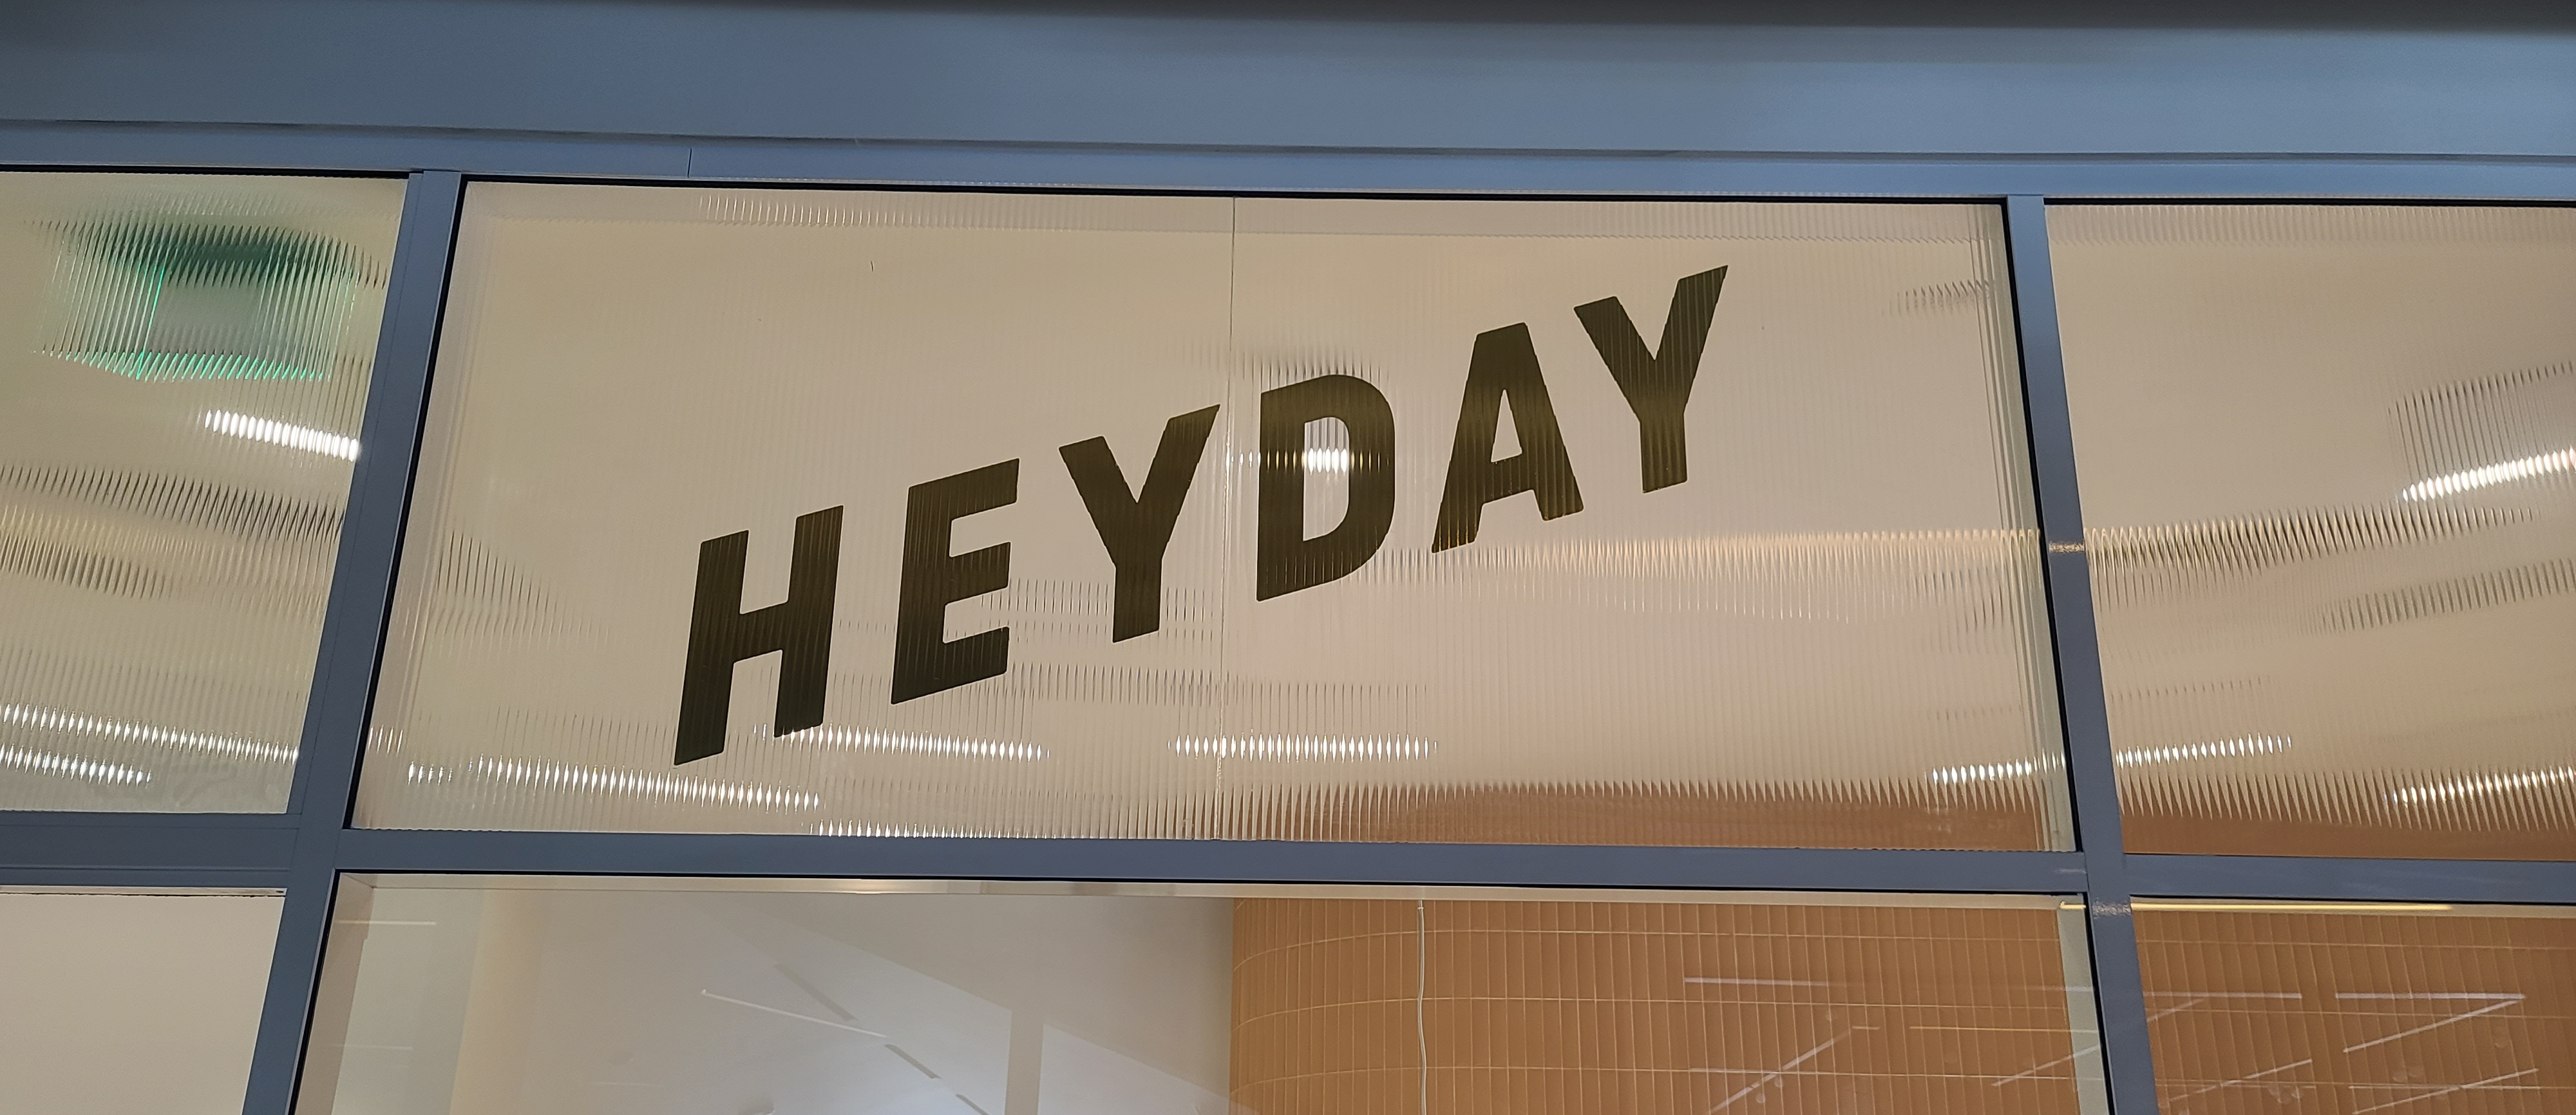 Any surface can be used for signage to boost brand visibility. That's what we did with these window graphics for Hey Day in Los Angeles!